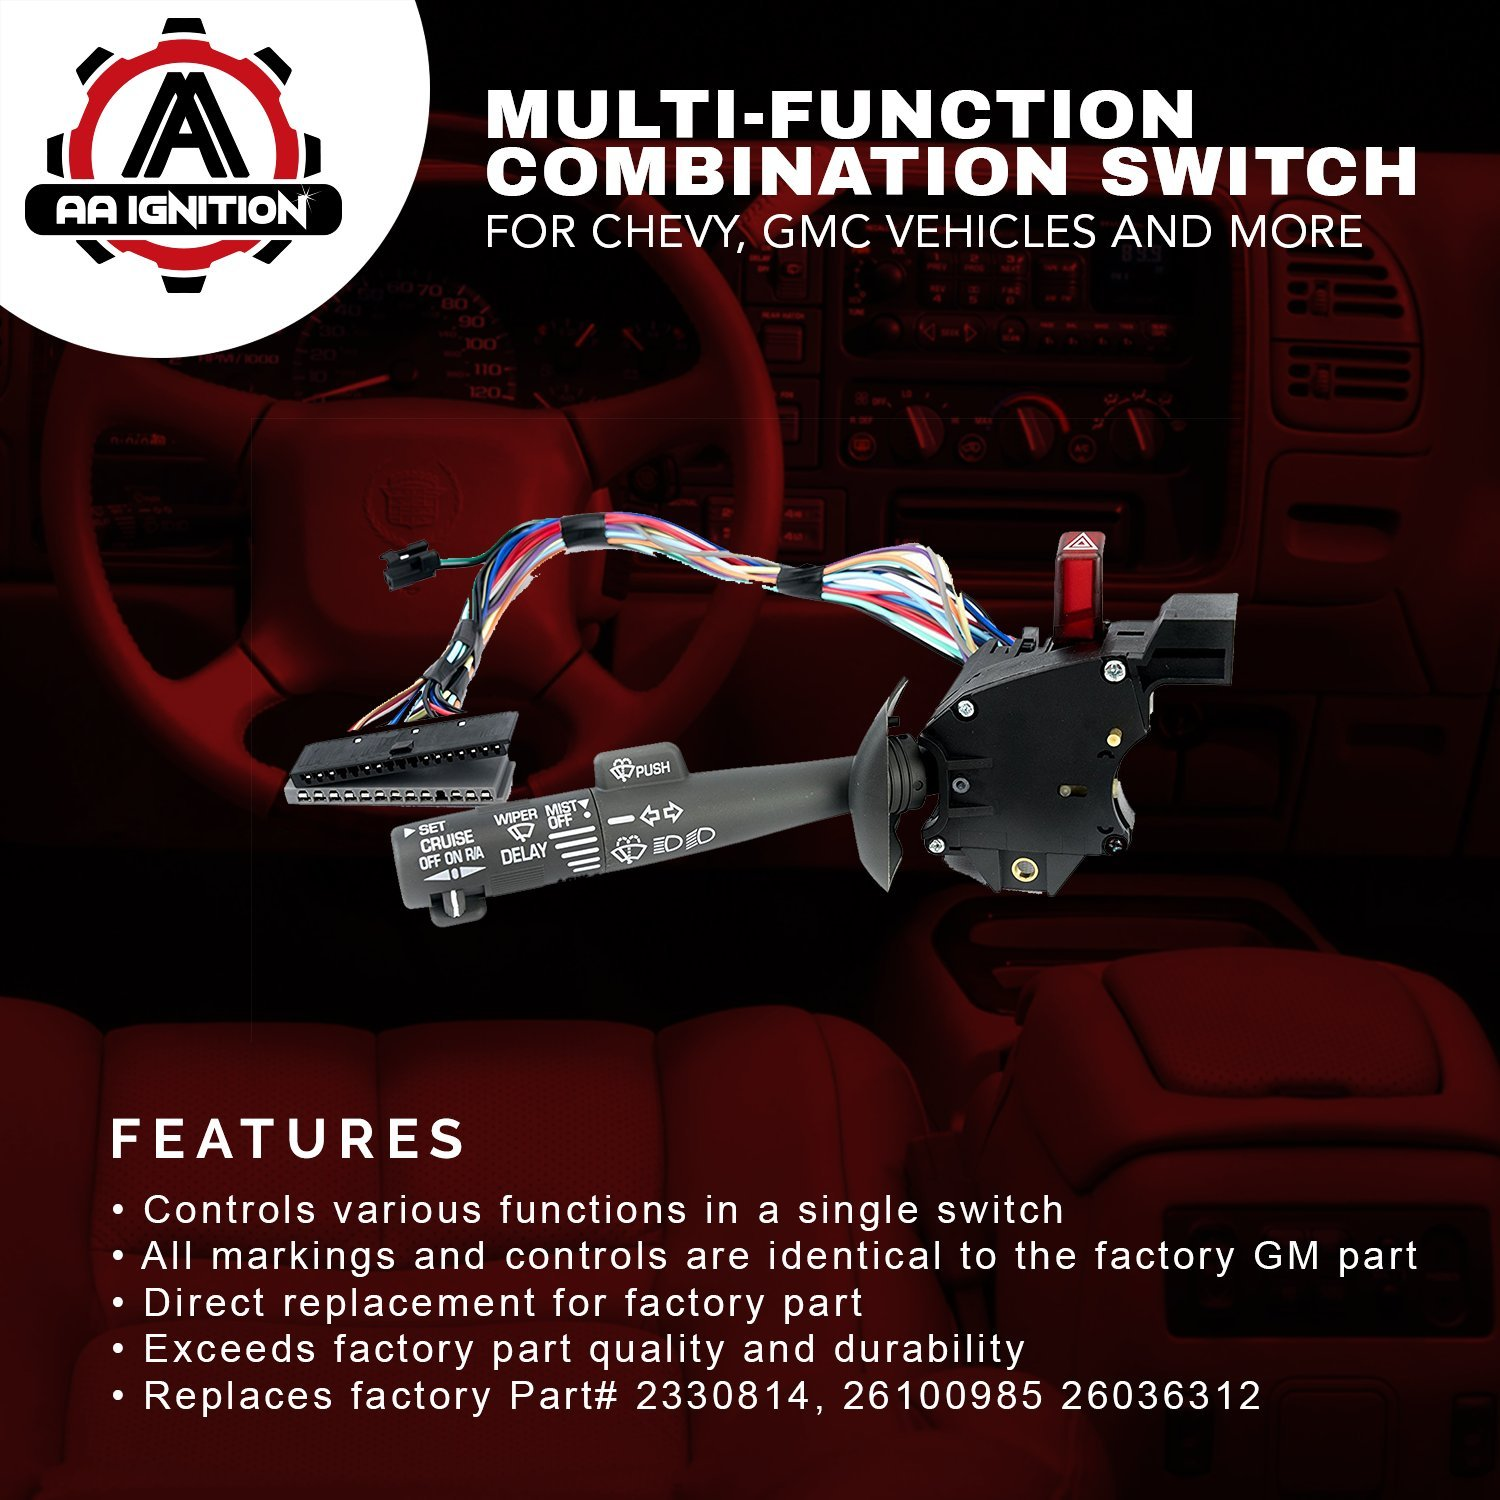 Multi Function Combination Switch Turn Signal Wiper 2000 Chevy 3500 Hazard Wiring Diagram Cruise Control Replaces Part 2330814 26100985 26036312 Fits Tahoe Blazer Suburban K1500 Sierra More Automotive